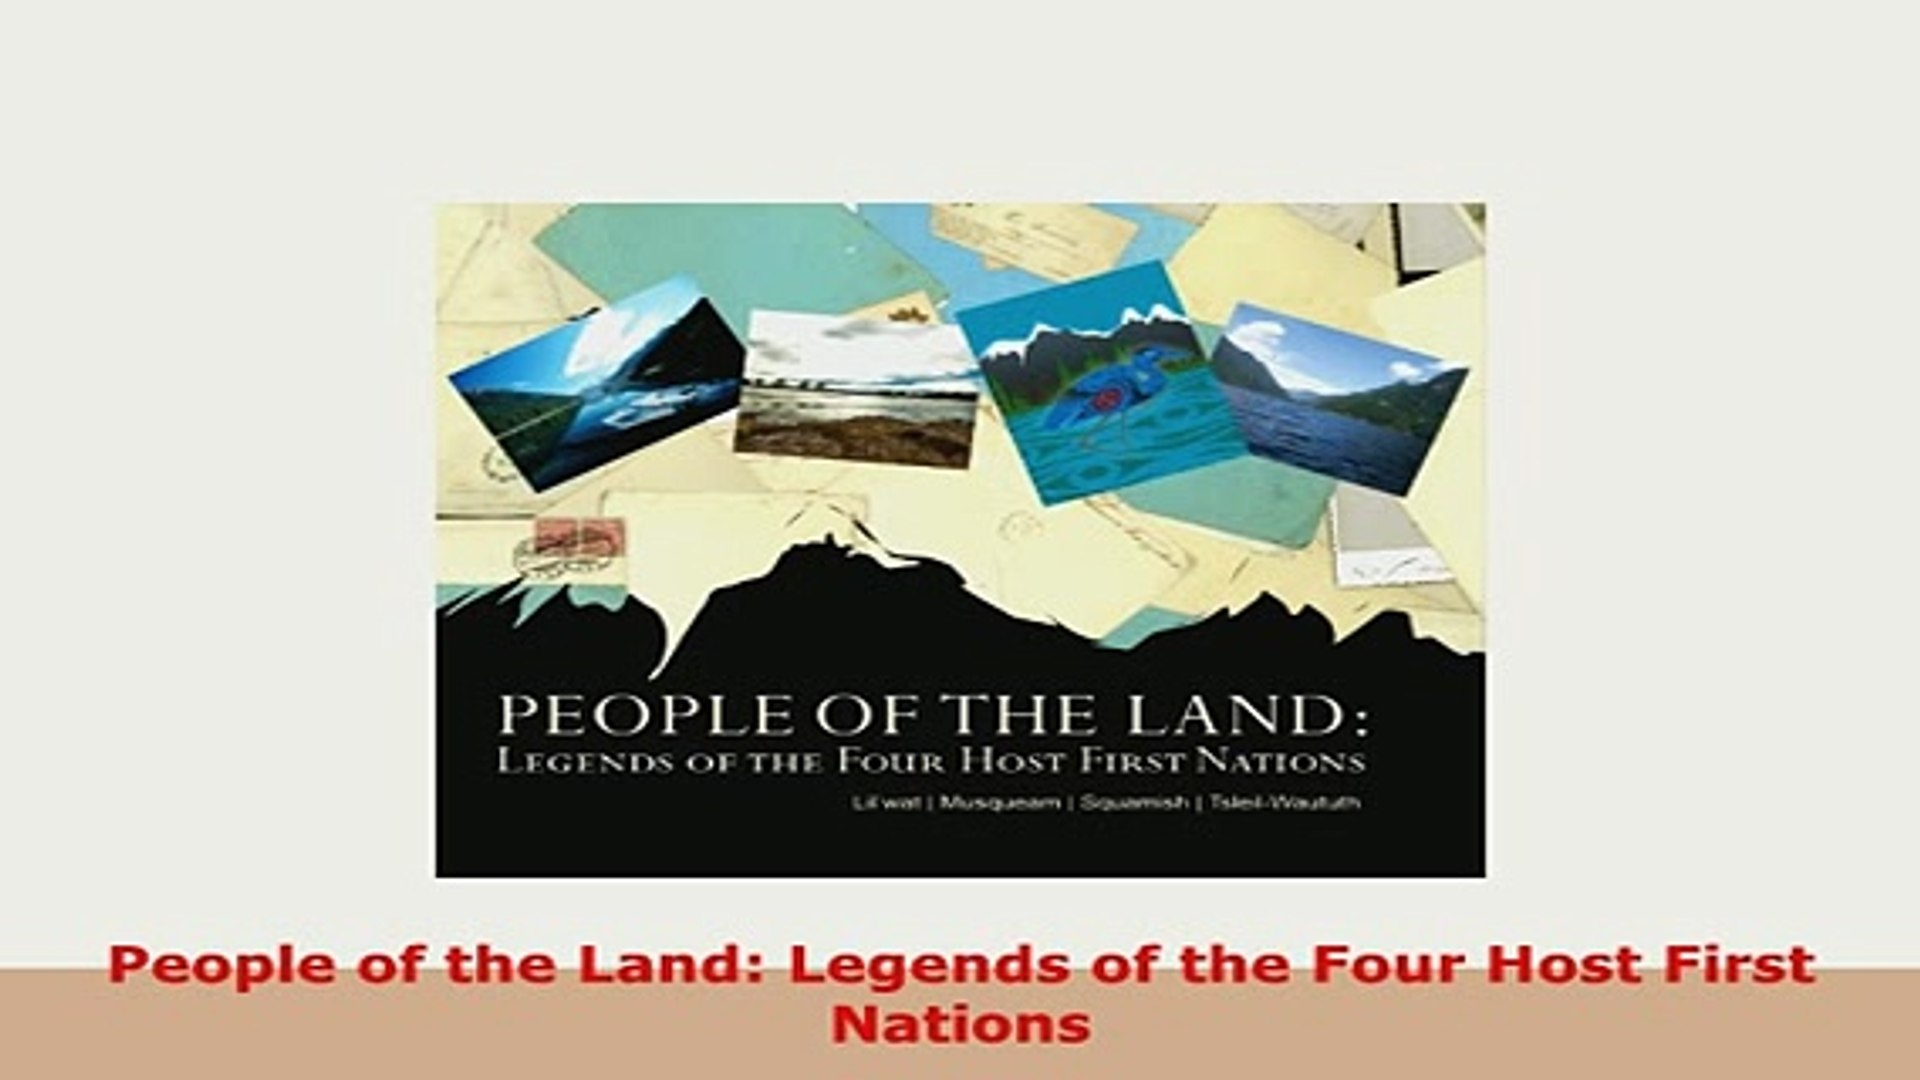 Legends of the Four Host First Nations People of the Land